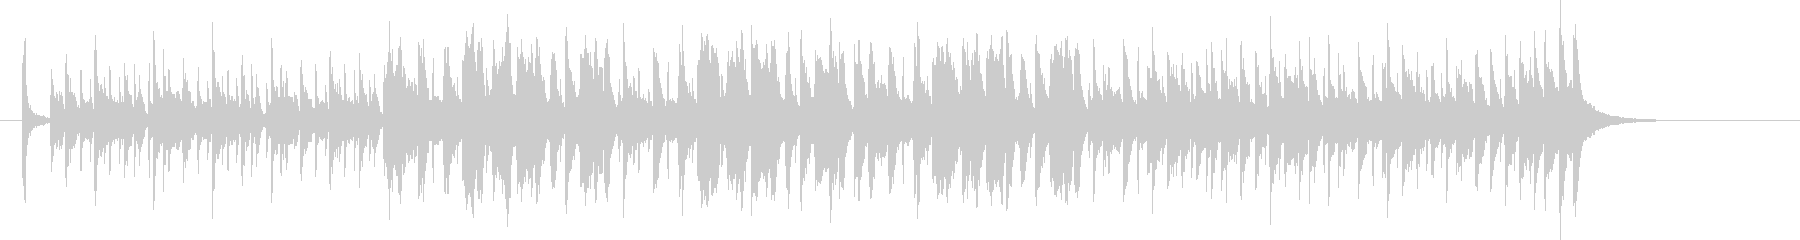 A light and pop band jingle's unreproduced waveform